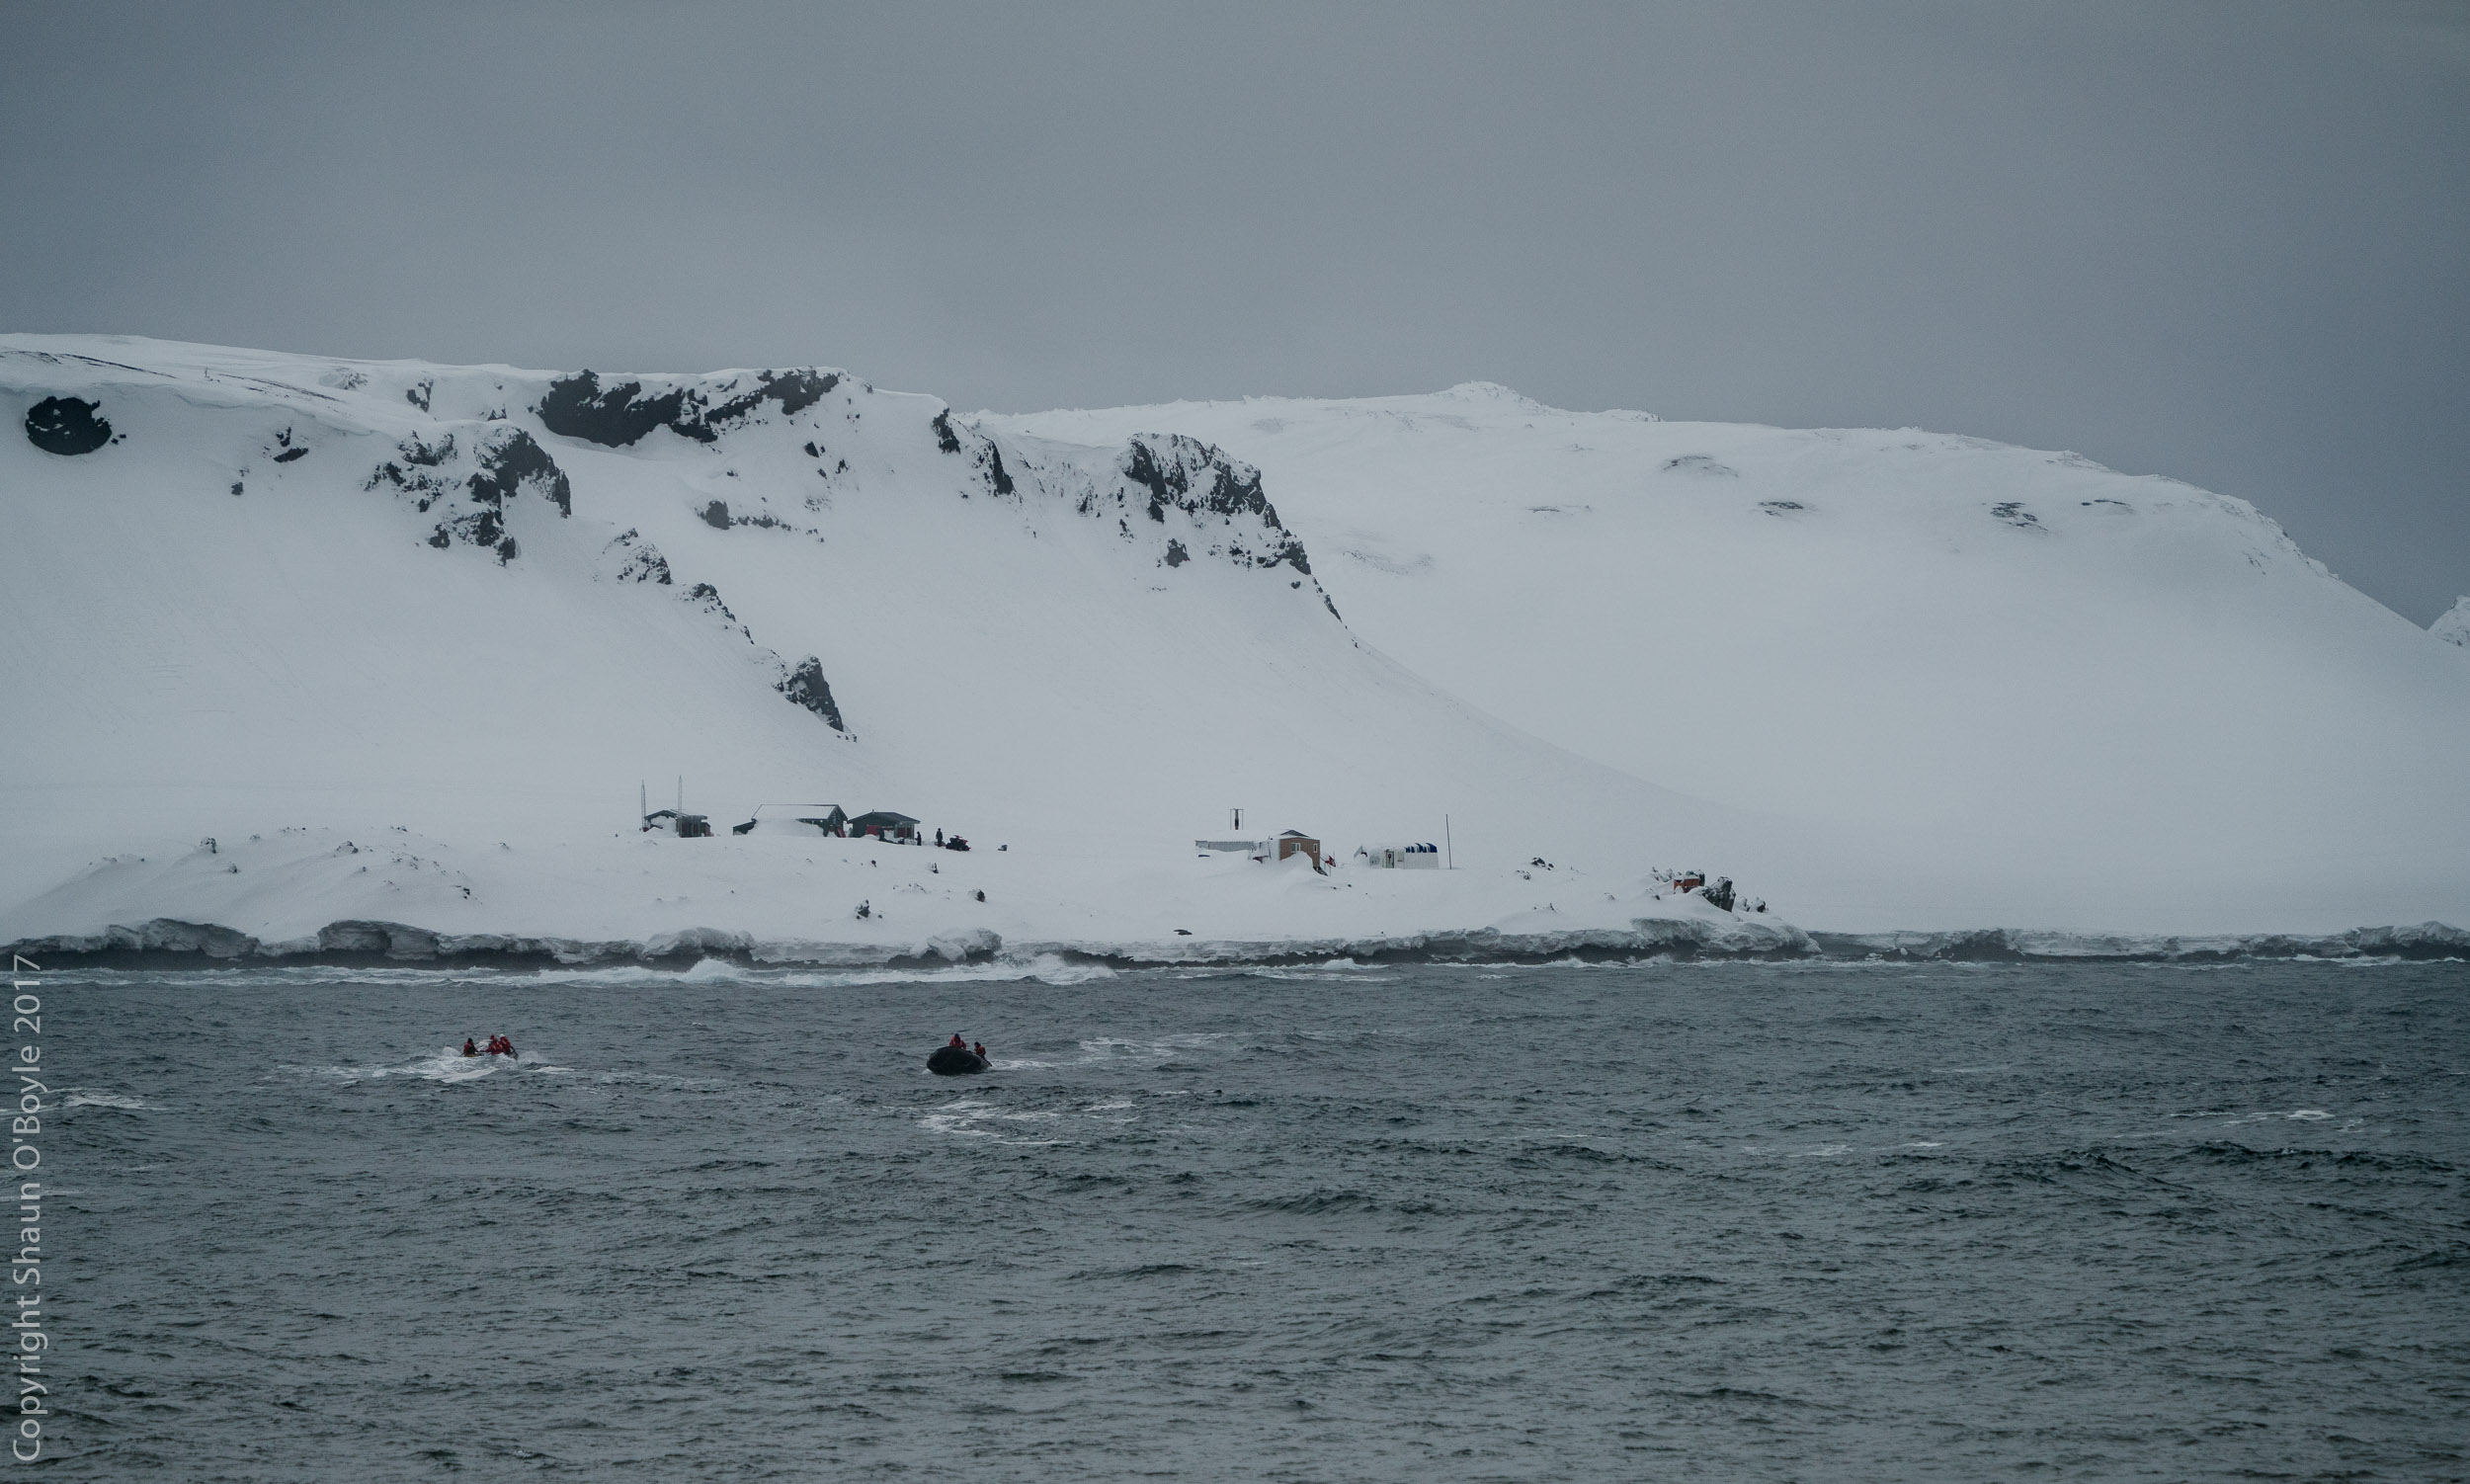 Marine Techs unload 6 months supplies and four researchers in rough seas, Cape Shirreff, South Shetland Islands.